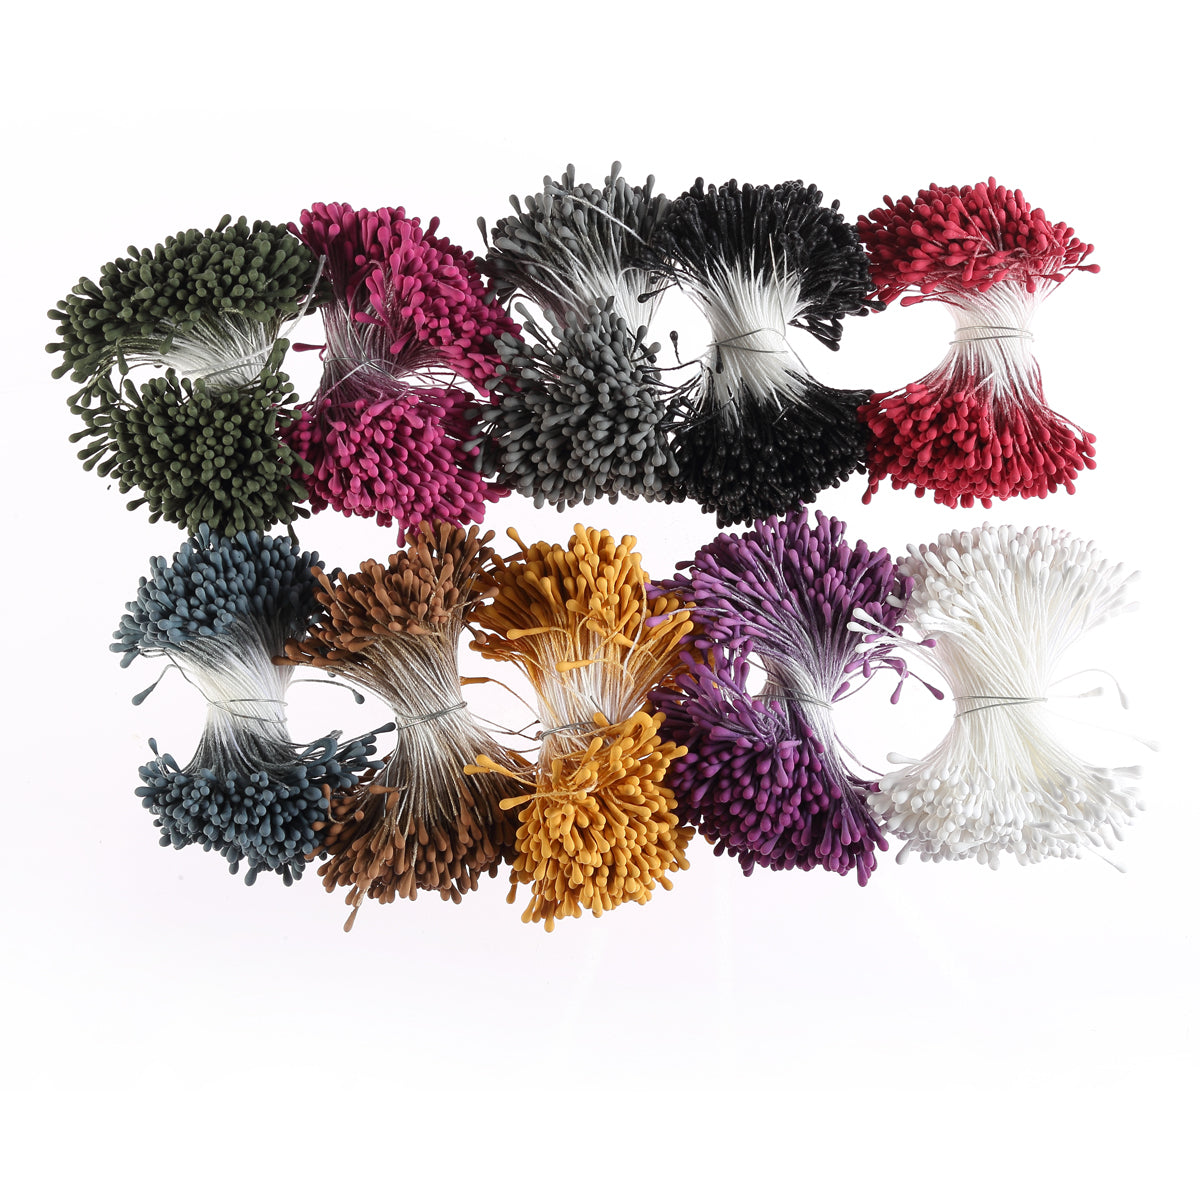 Organic Flower Stamen Collection - 2 Options (Pastel or Dark)